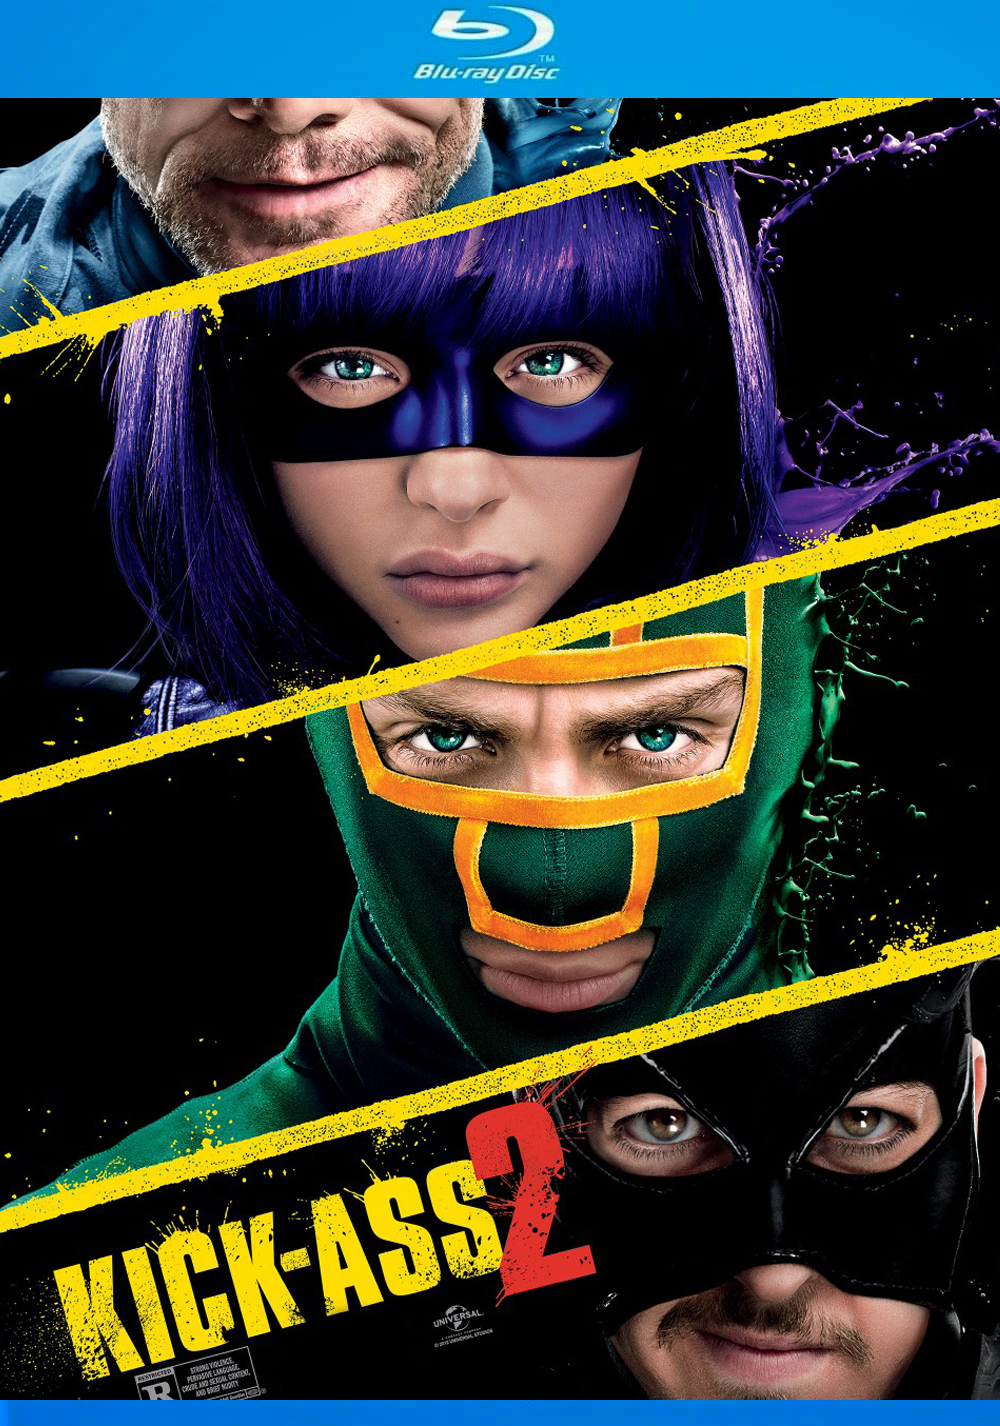 Download Kick-Ass 2 (2013) - Dublado MKV 720p BRRip MEGA